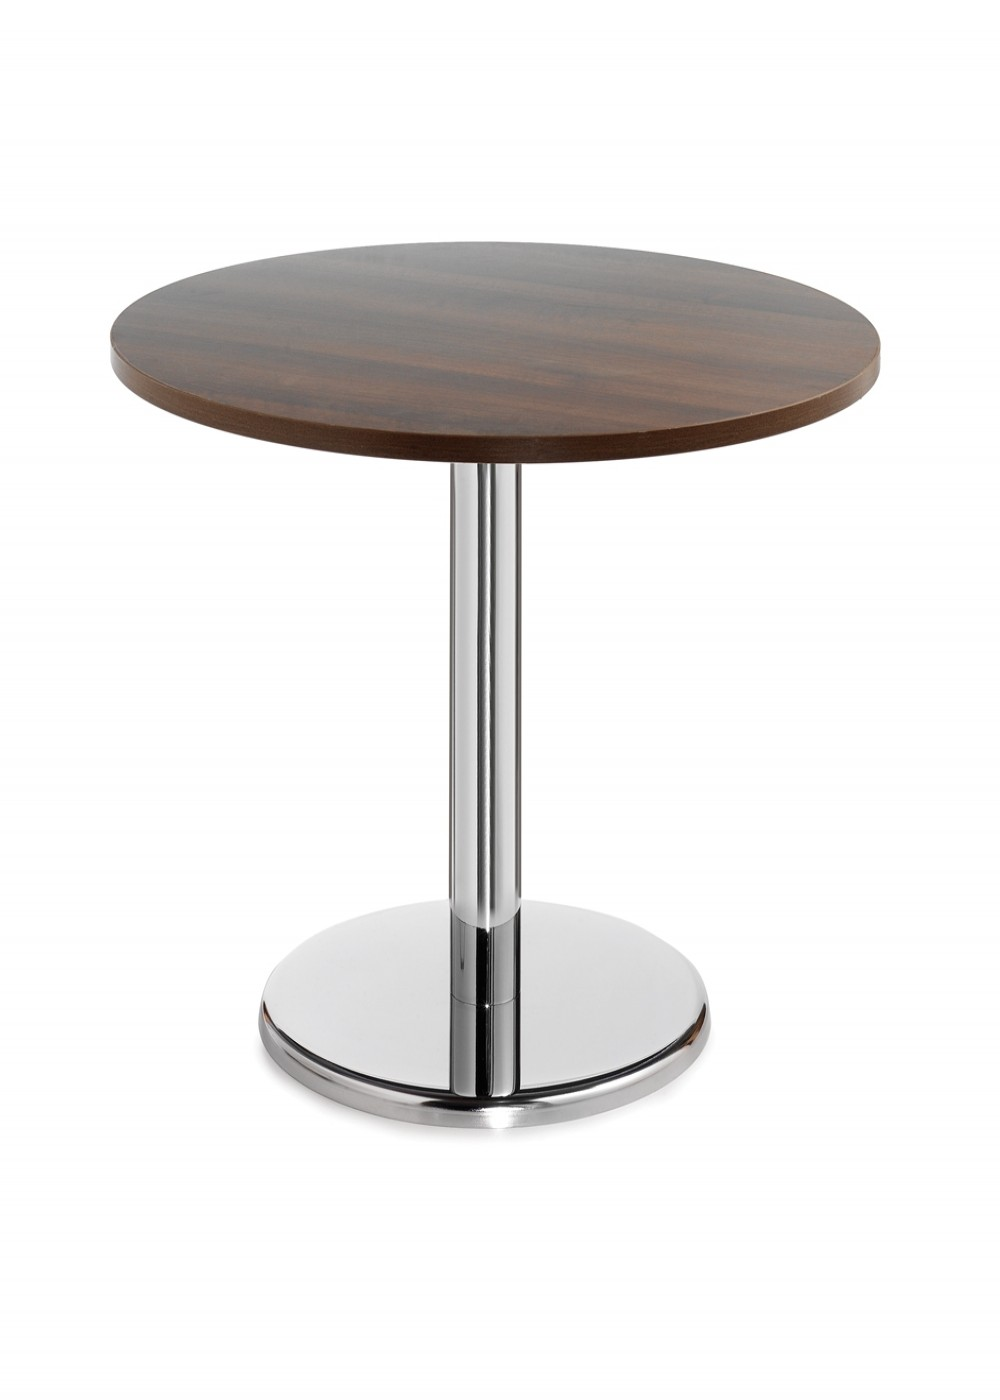 Bistro Table Round with Chrome Legs 121 Office Furniture